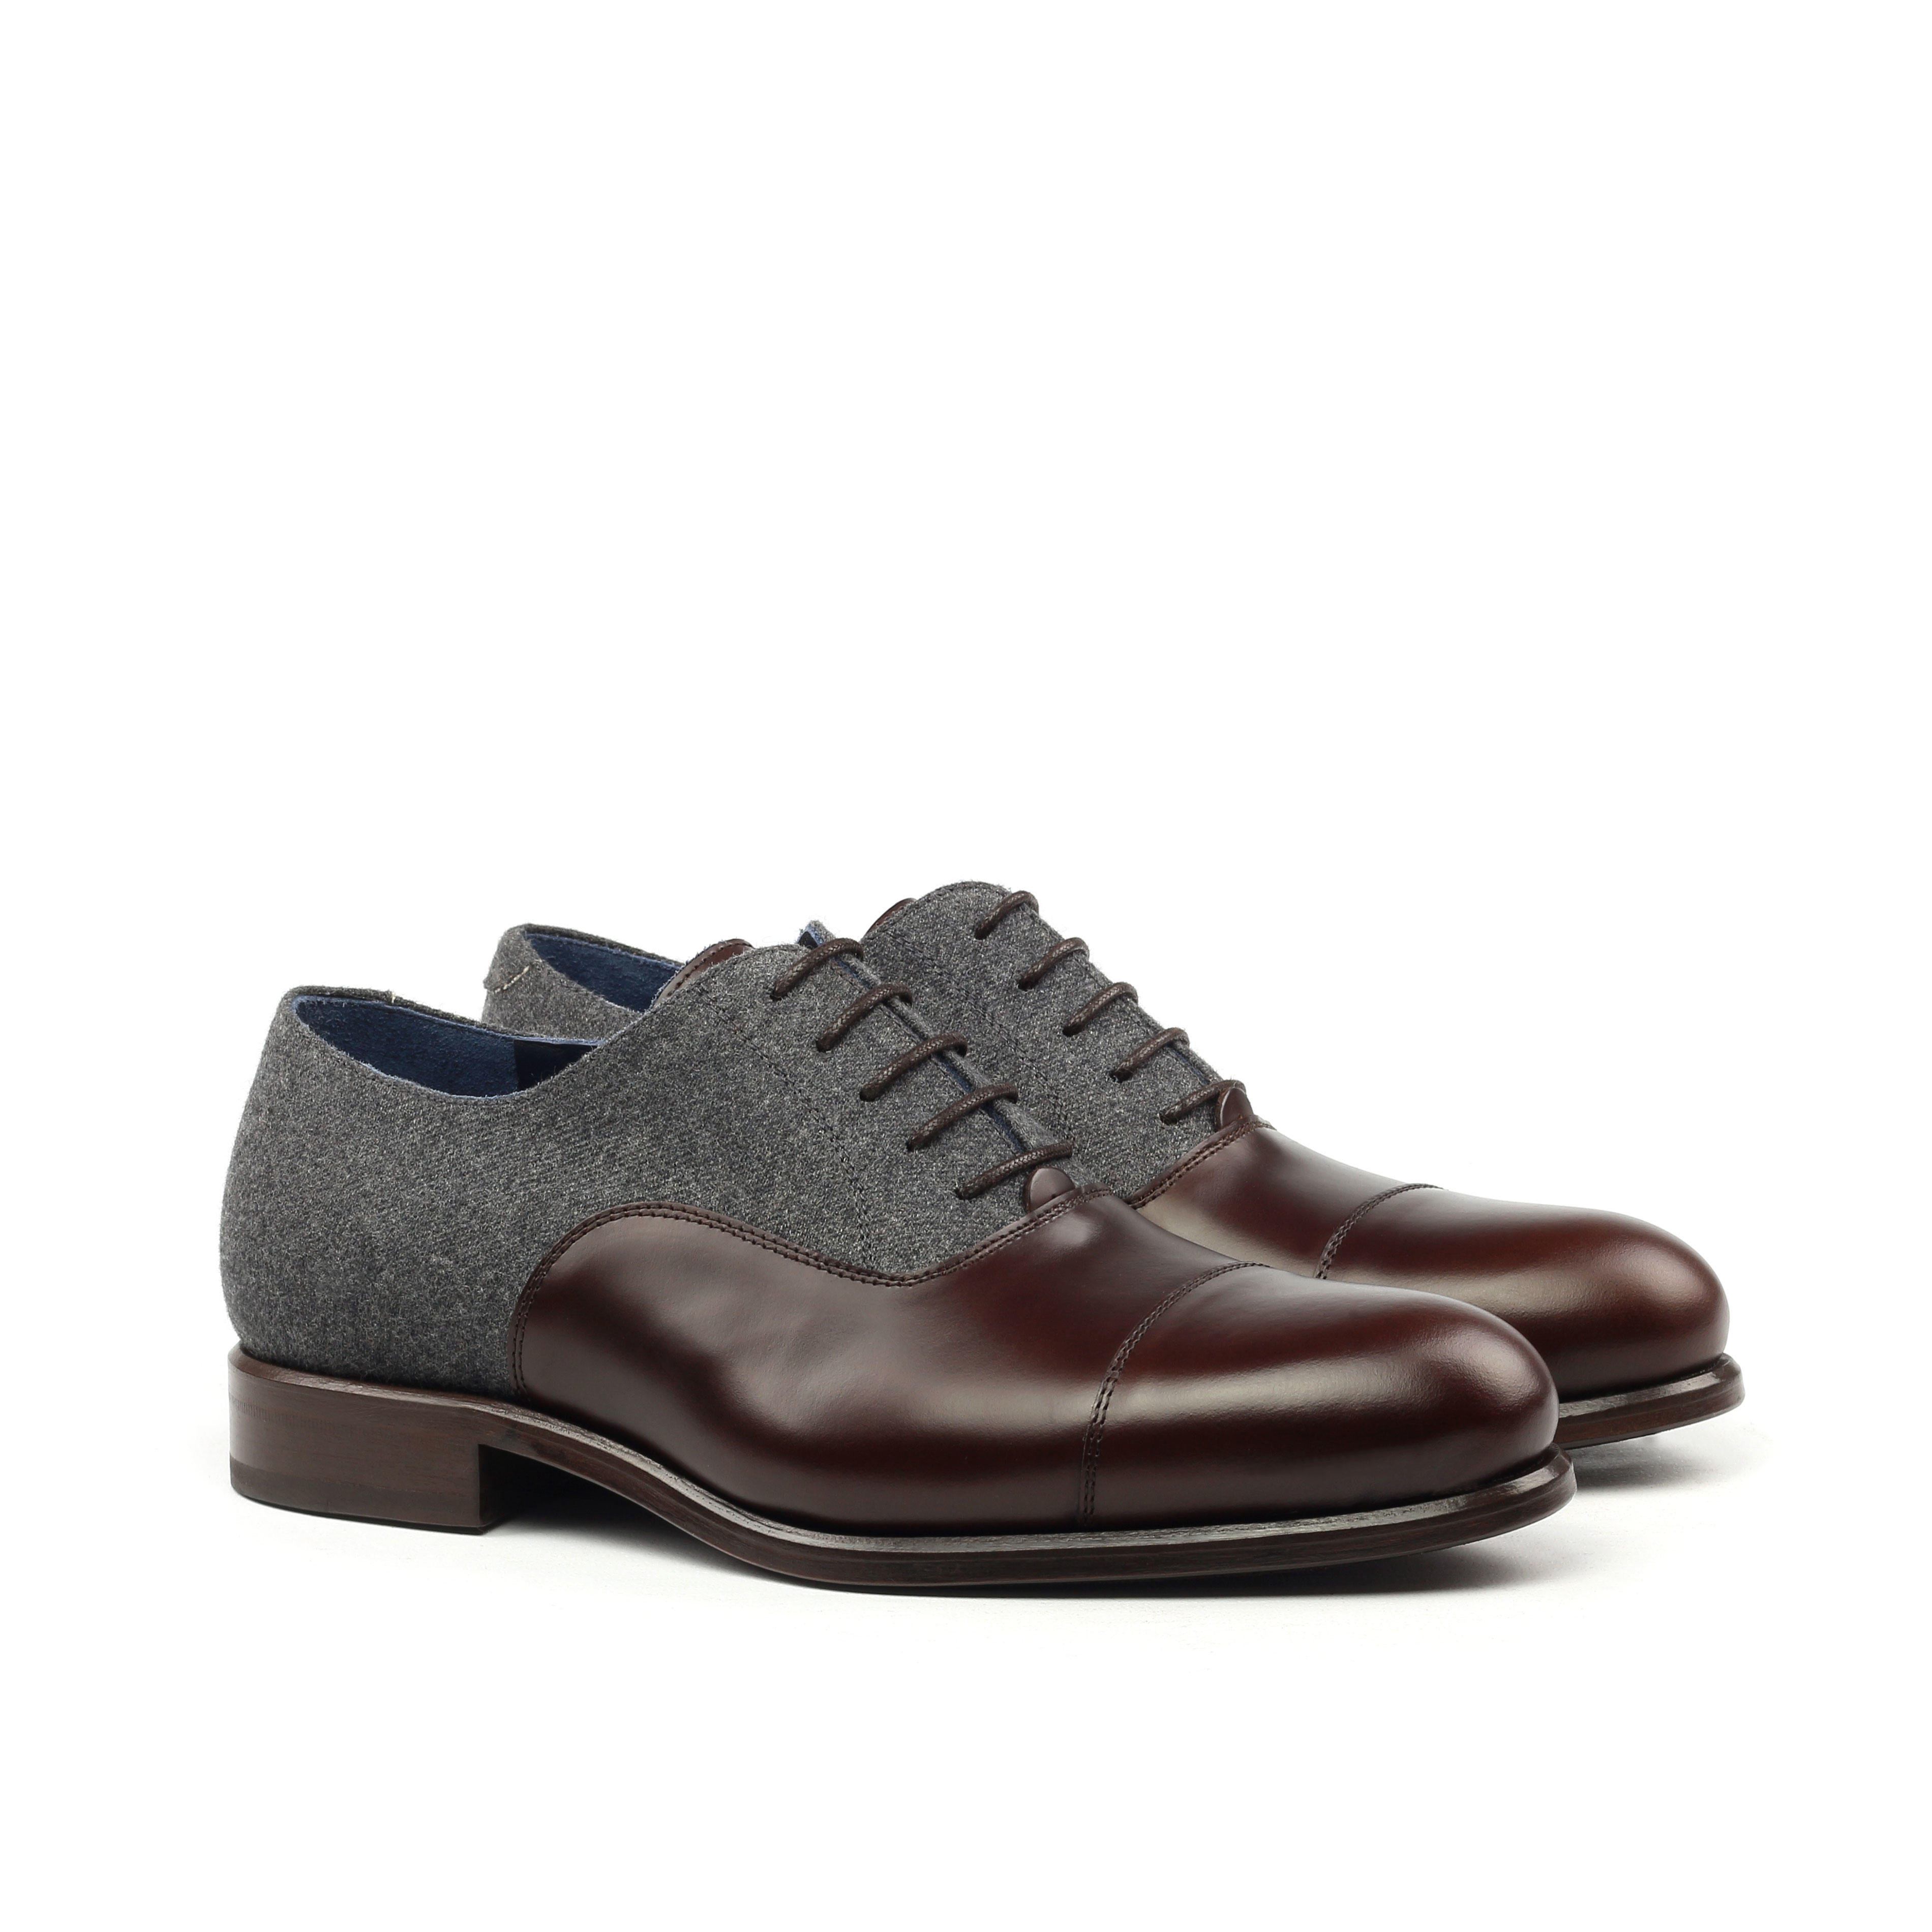 MANOR OF LONDON 'The Oxford' Polished Brown Calfskin & Grey Flannel Shoe Luxury Custom Initials Monogrammed Front Side View